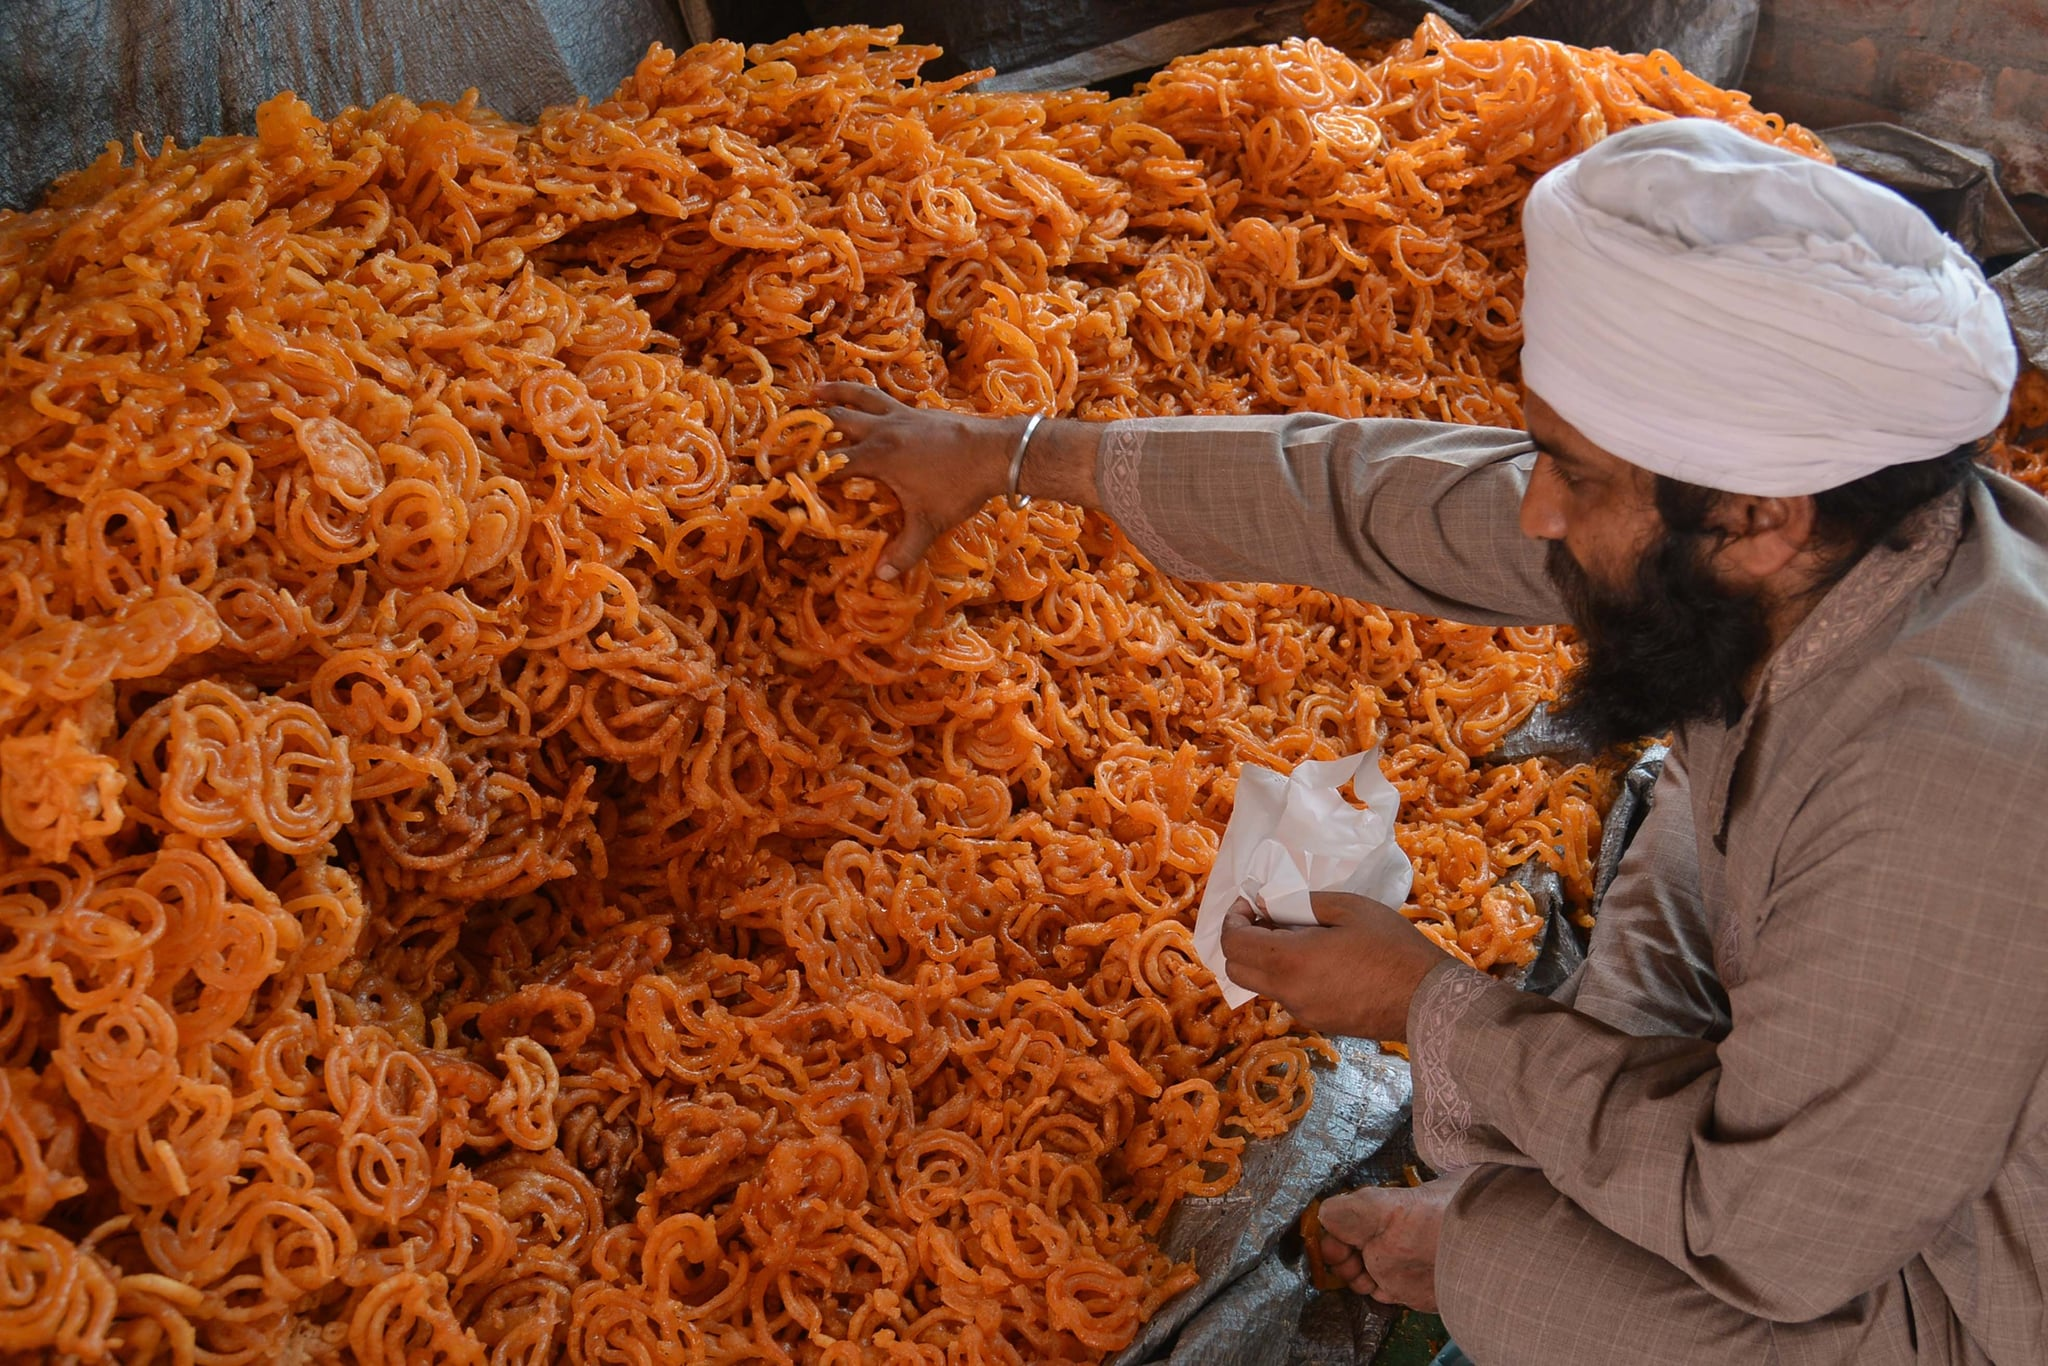 An Indian Sikh devotee puts 'Jalebi' sweets in plastic packets for free distribution to devotees during the Baisakhi festival celebrations held at Langar Ghar, a community hall at the Golden temple in Amritsar on April 14, 2015. Baisakhi, which is celebrated in the Punjab region, coincides with other festivals celebrated on the first day of Vaisakh, in some regions of India such as Puthandu, the Tamil New Year.  Baisakhi is especially important for the Sikh community as it marks the establishment of the Khalsa.  AFP PHOTO / NARINDER NANU        (Photo credit should read NARINDER NANU/AFP via Getty Images)